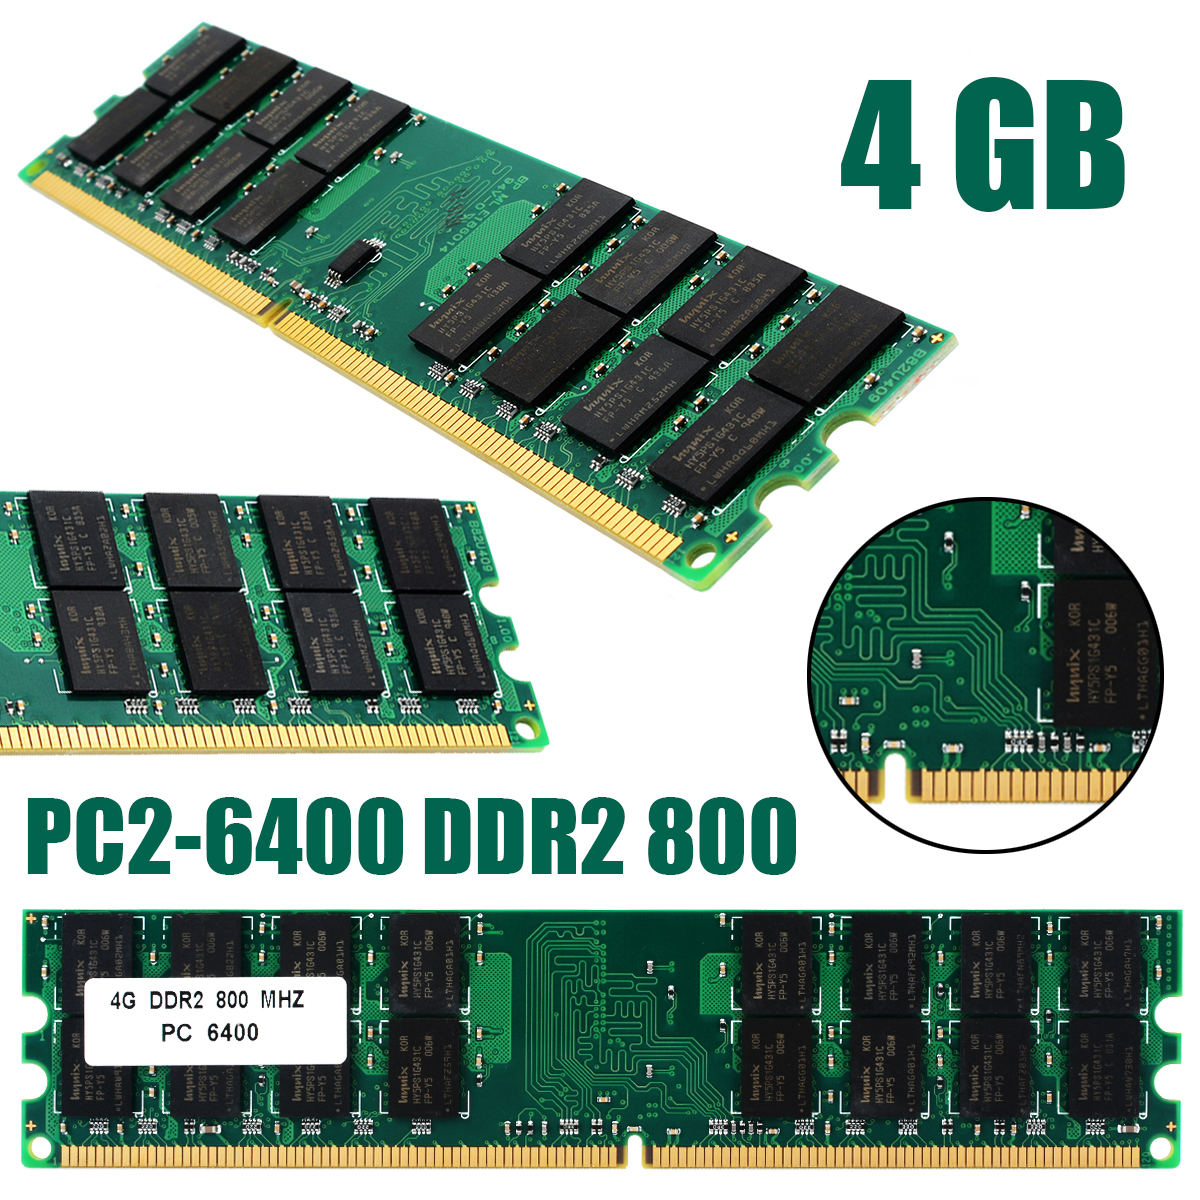 New Arrival 1pc <font><b>4GB</b></font> PC2-6400 <font><b>DDR2</b></font> 800MHZ Memoria Ram Non-ECC 240Pin Memory Ram For AMD Desktop PC2 6400/5300/4200 <font><b>800</b></font>/667/533MHZ image